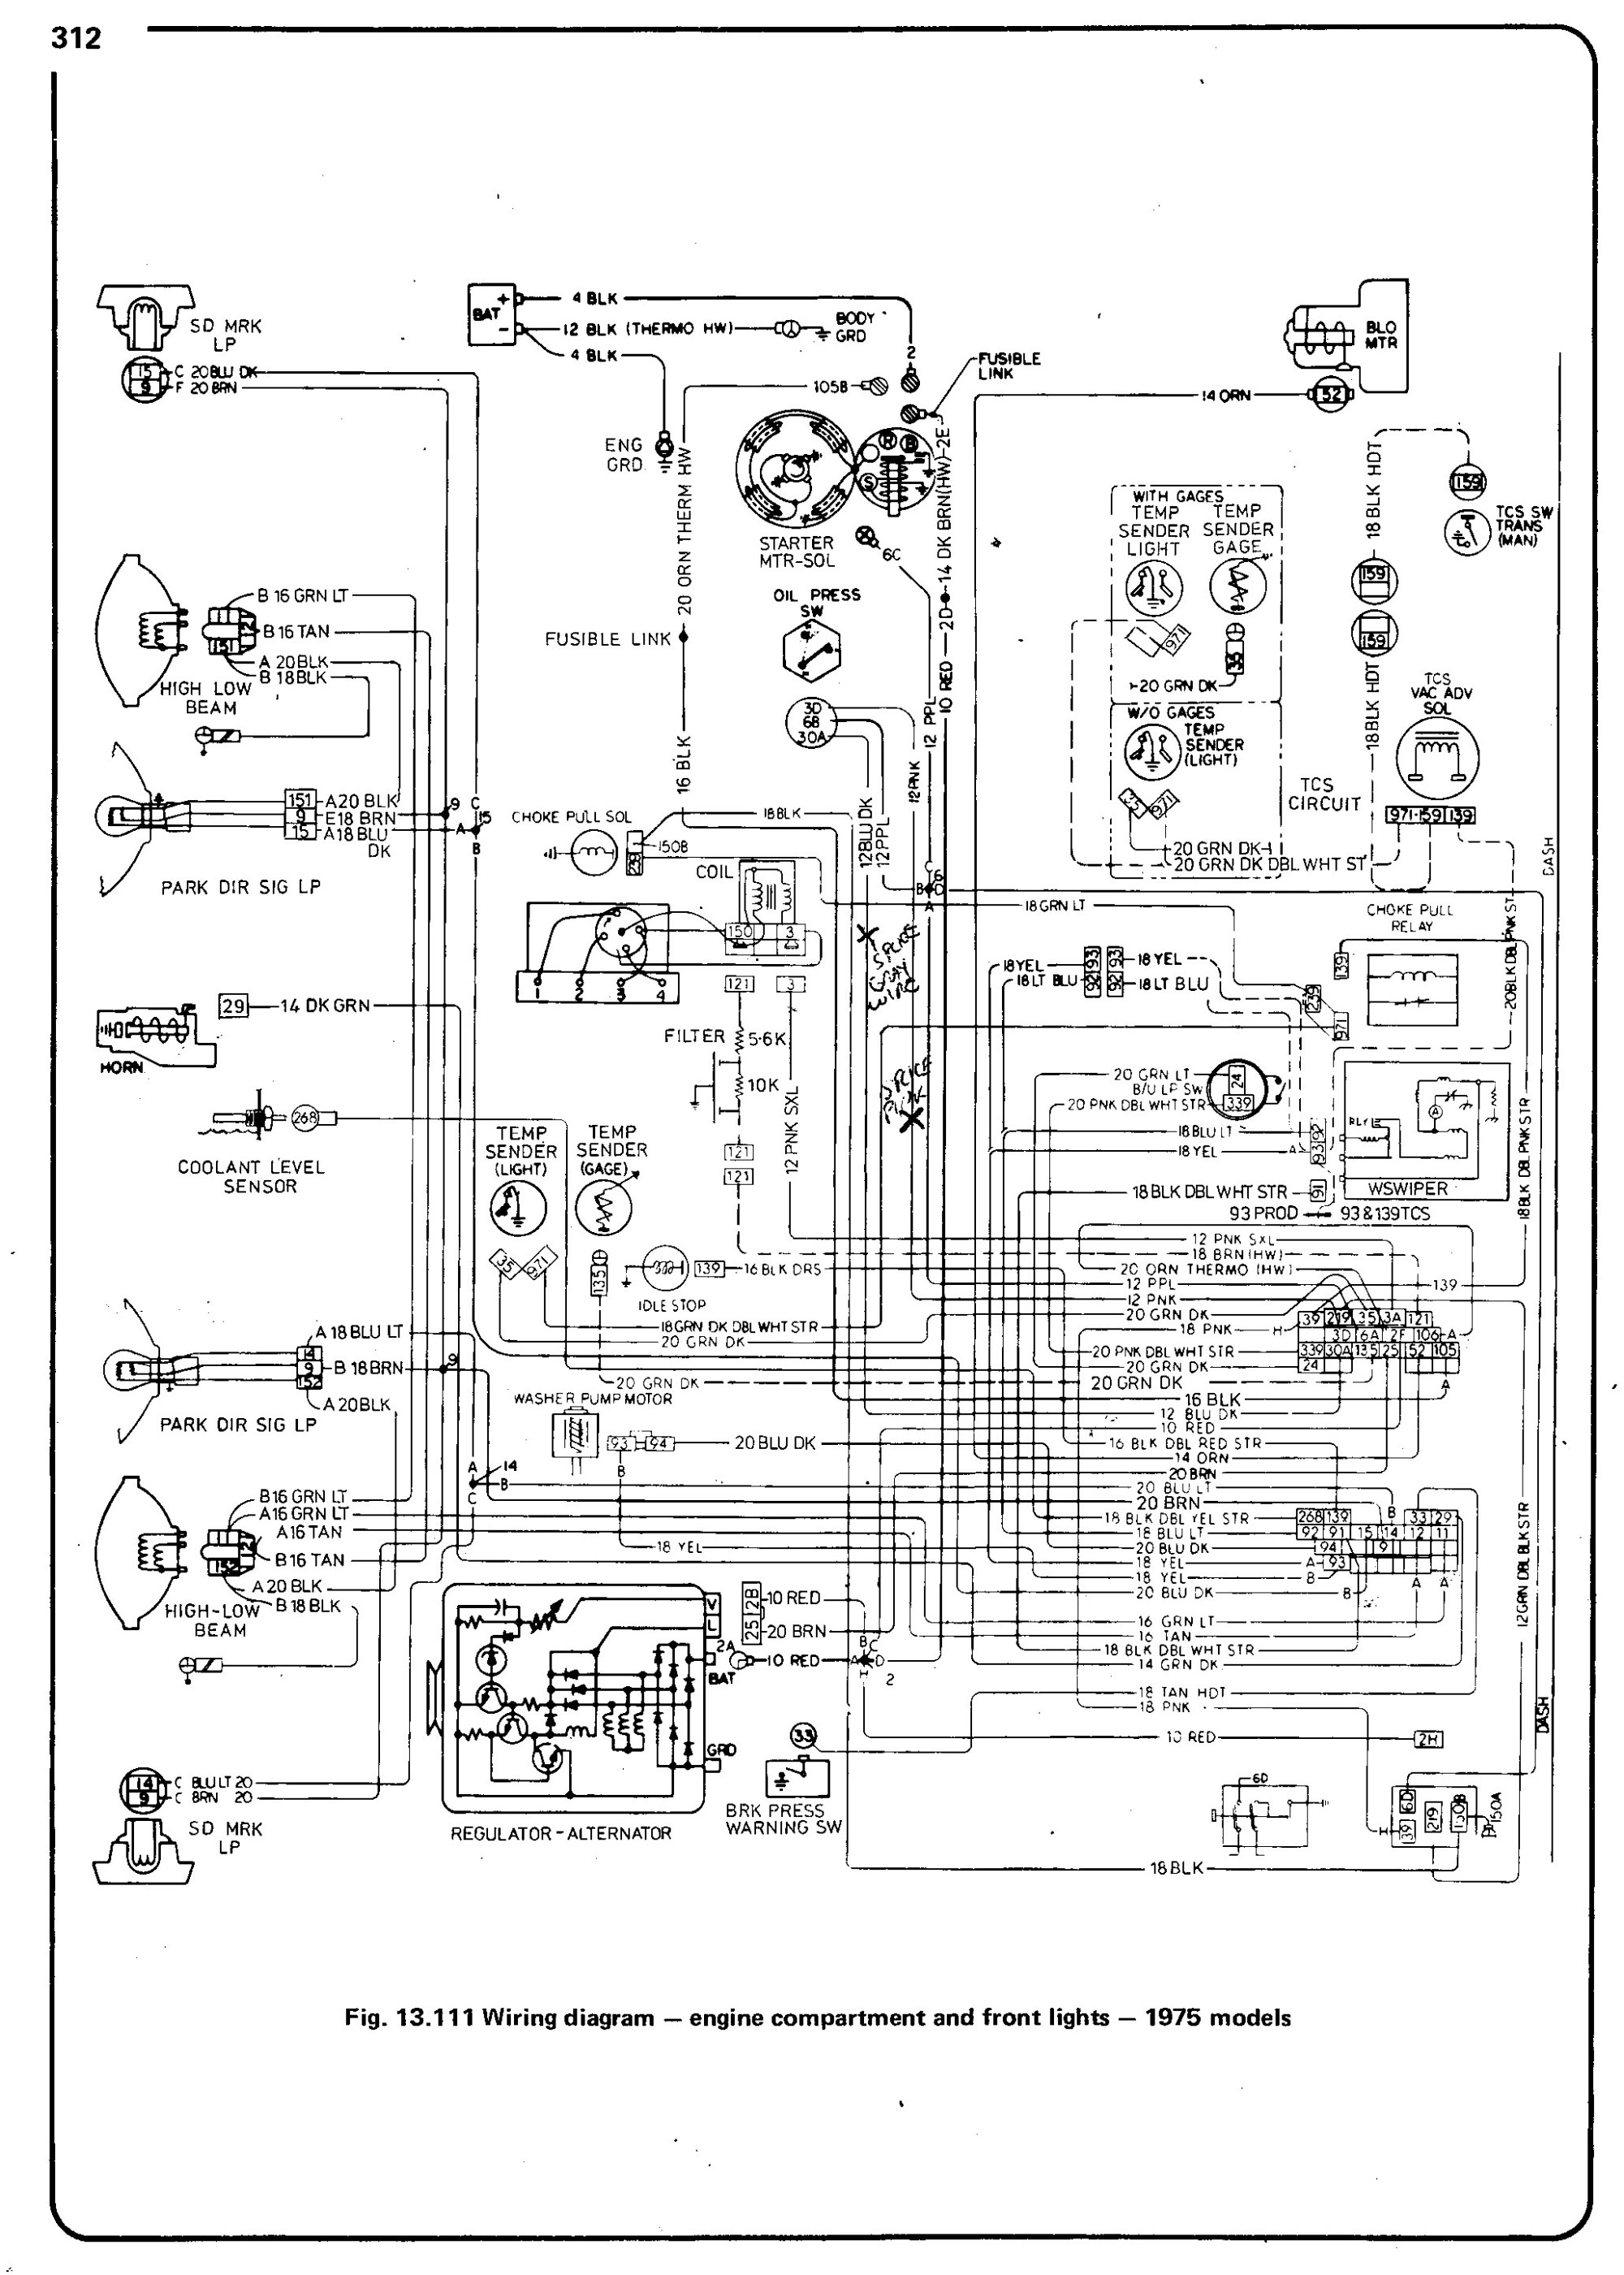 hight resolution of hbody wiring diagram